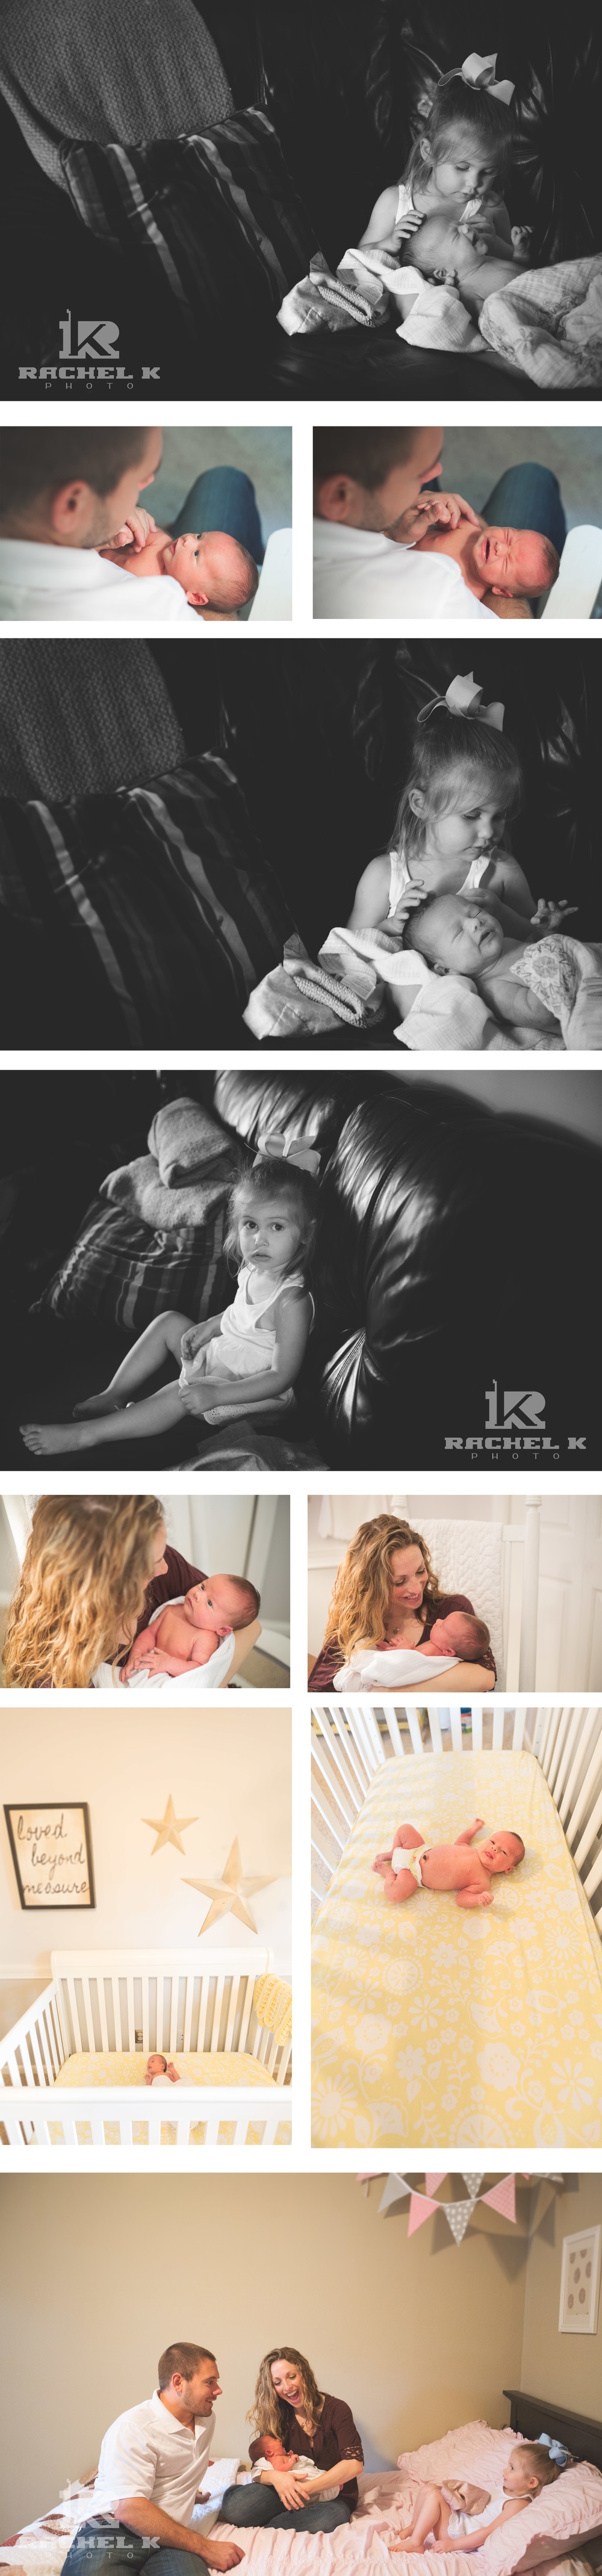 Knoxville photographer Rachel K Photo newborn session